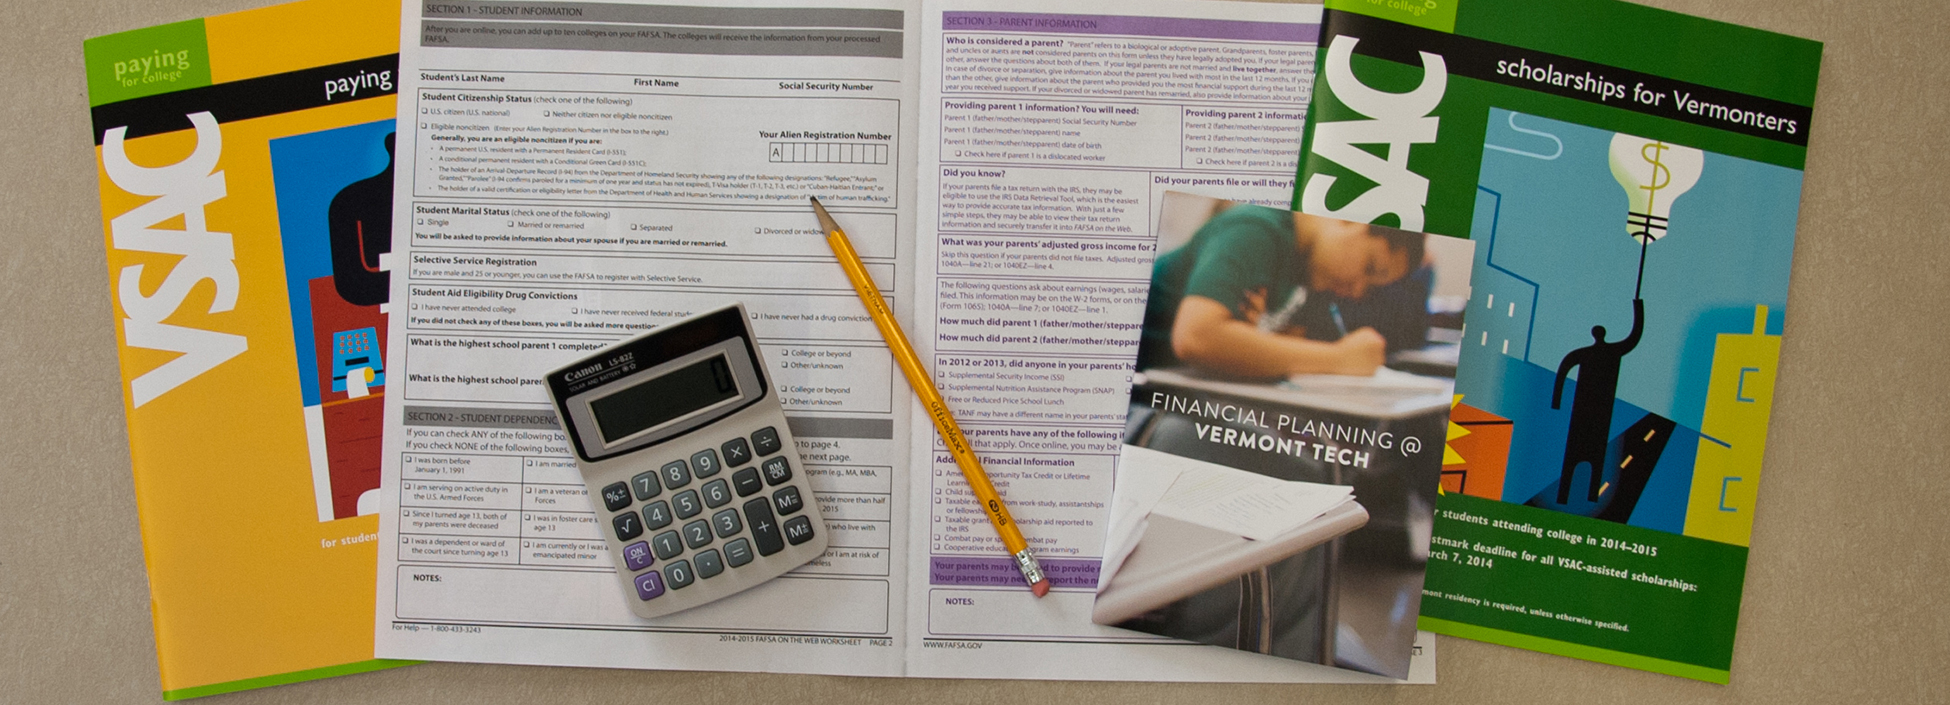 Vermont Tech's office of Financial Aid can help you with your funding questions.